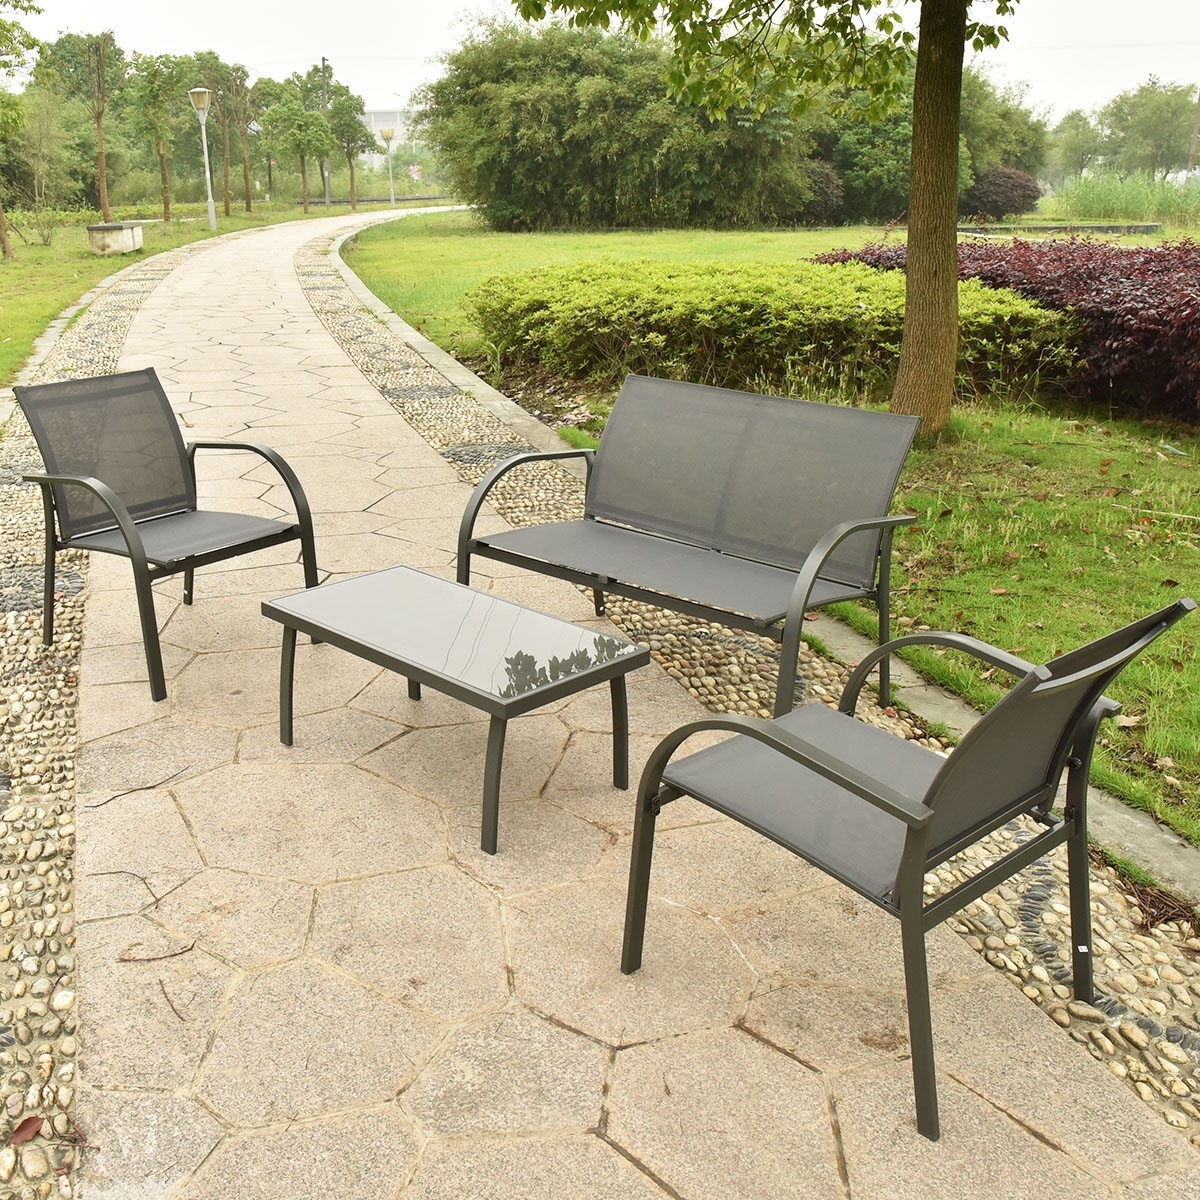 garden chairs costway 4pcs patio garden furniture set steel frame outdoor lawn sofa chairs PCDRFWX